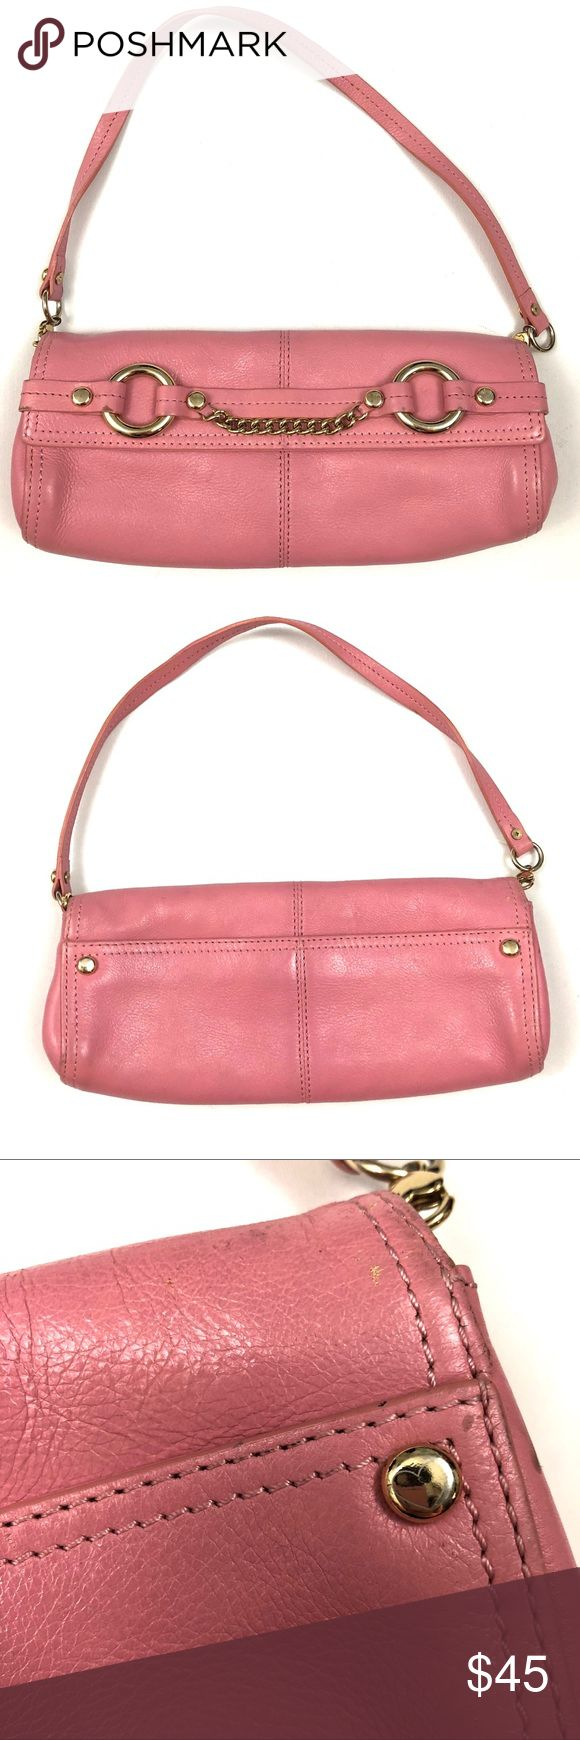 "Juicy Couture pink leather petite shoulder bag Juicy Couture pink leather shoulder bag with gold chain. Flap closure with magnets. One interior zip pocket. Measures approx 10.5""x5""x1.25"". Great details typical of a Juicy bag - cotton logo interior, 'J' zipper pull, embossed logo hardware. Used with signs of wear (see pics); all wear is really only visible up close and is still a beautiful bag with lots of life left. Juicy Couture Bags Shoulder Bags"